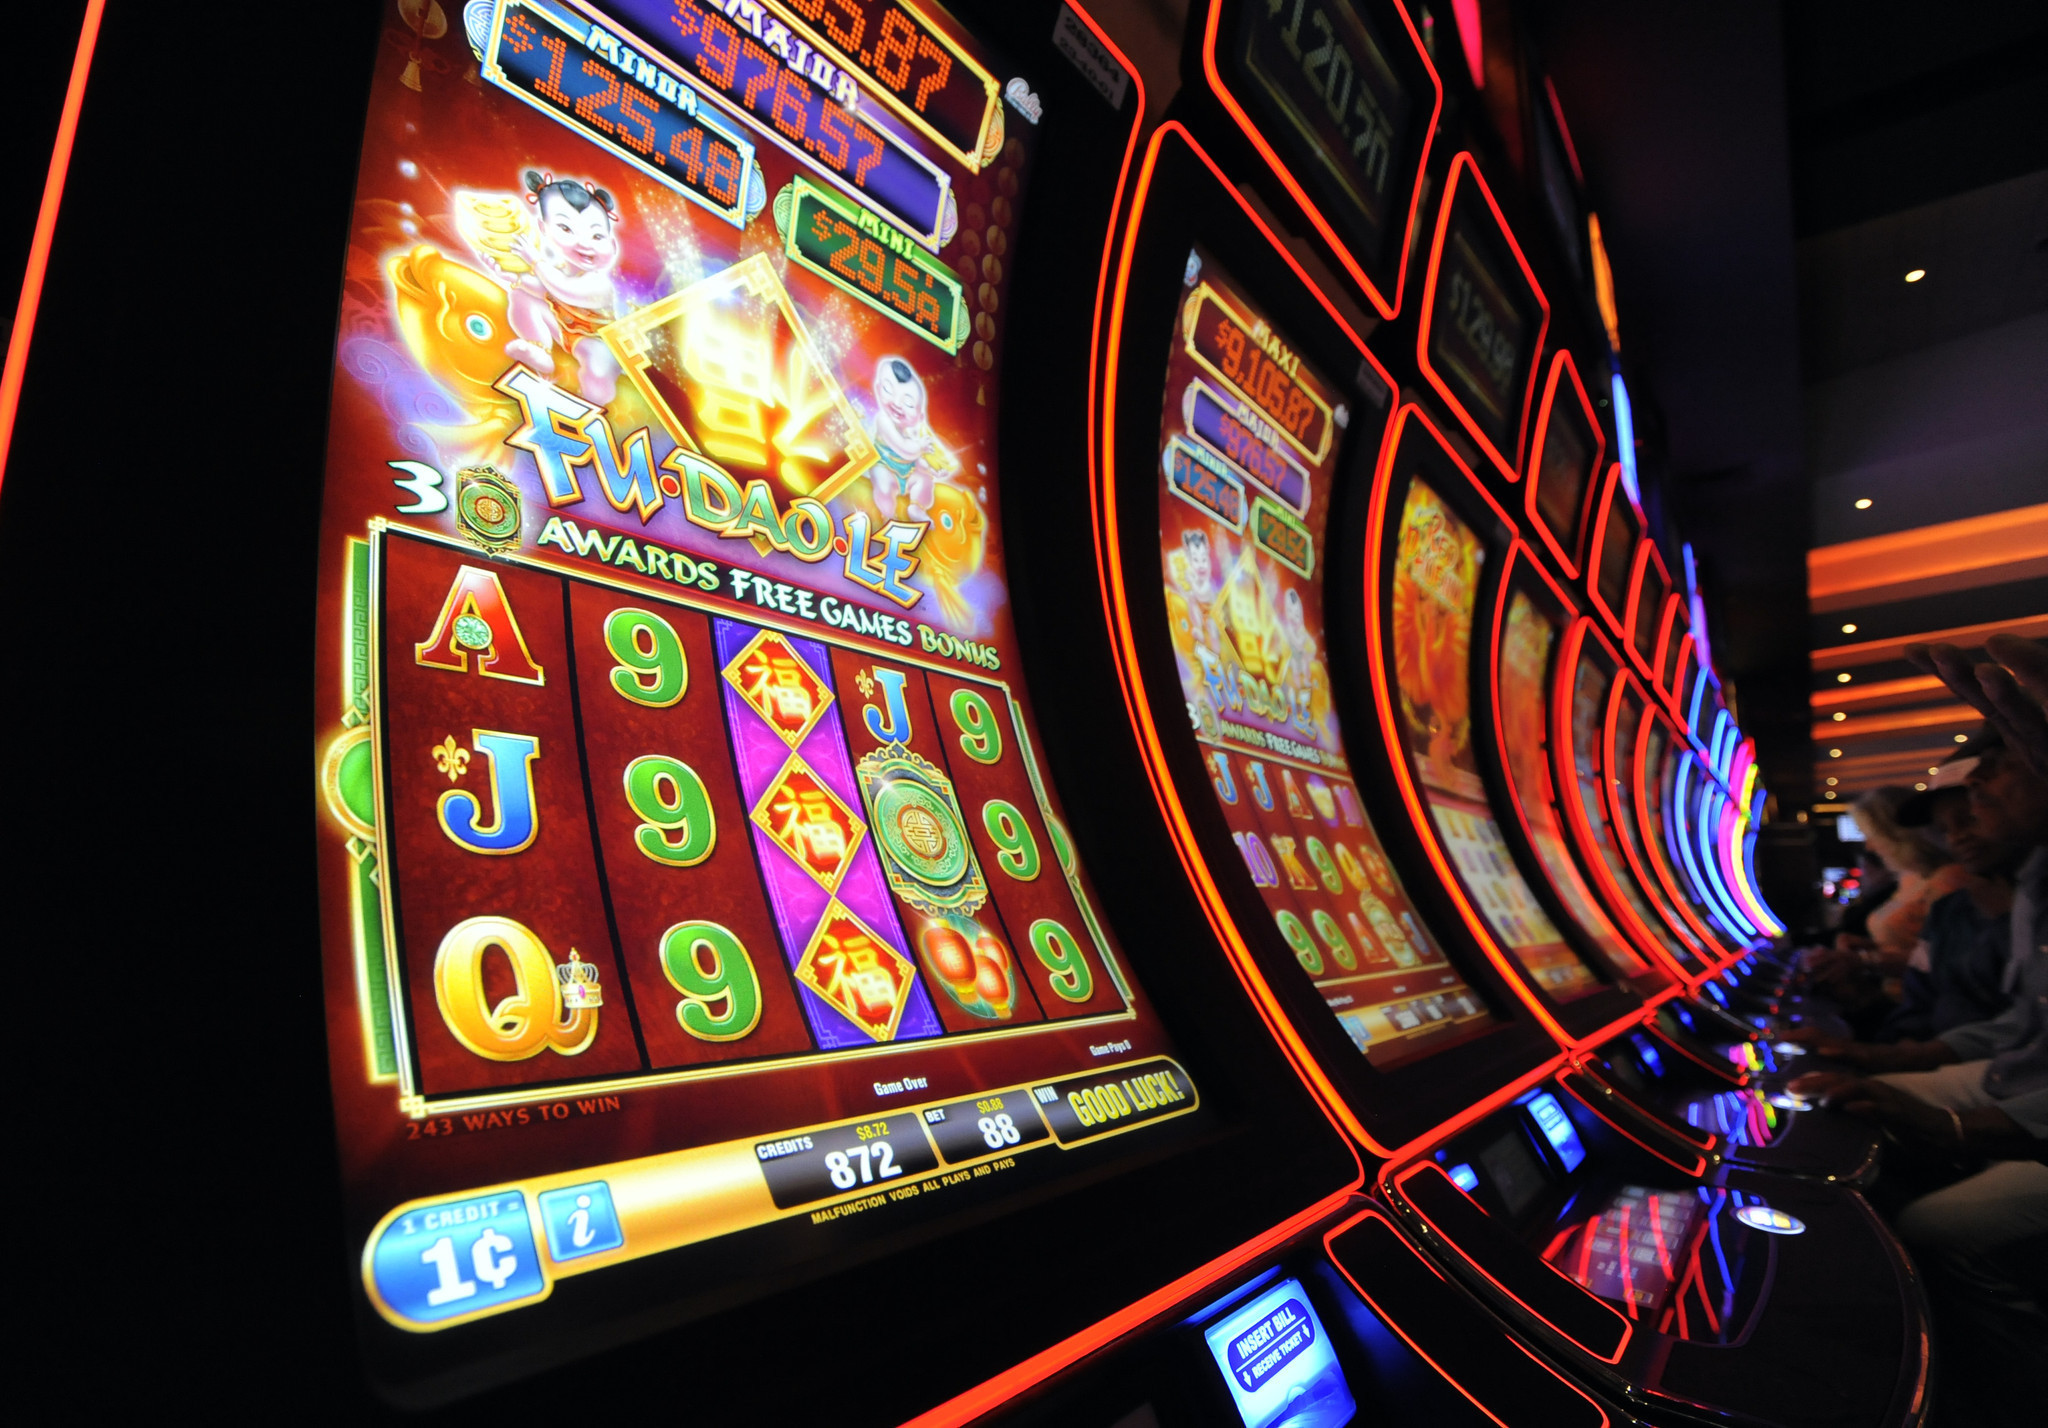 State gaming regulators are recommending that Maryland's